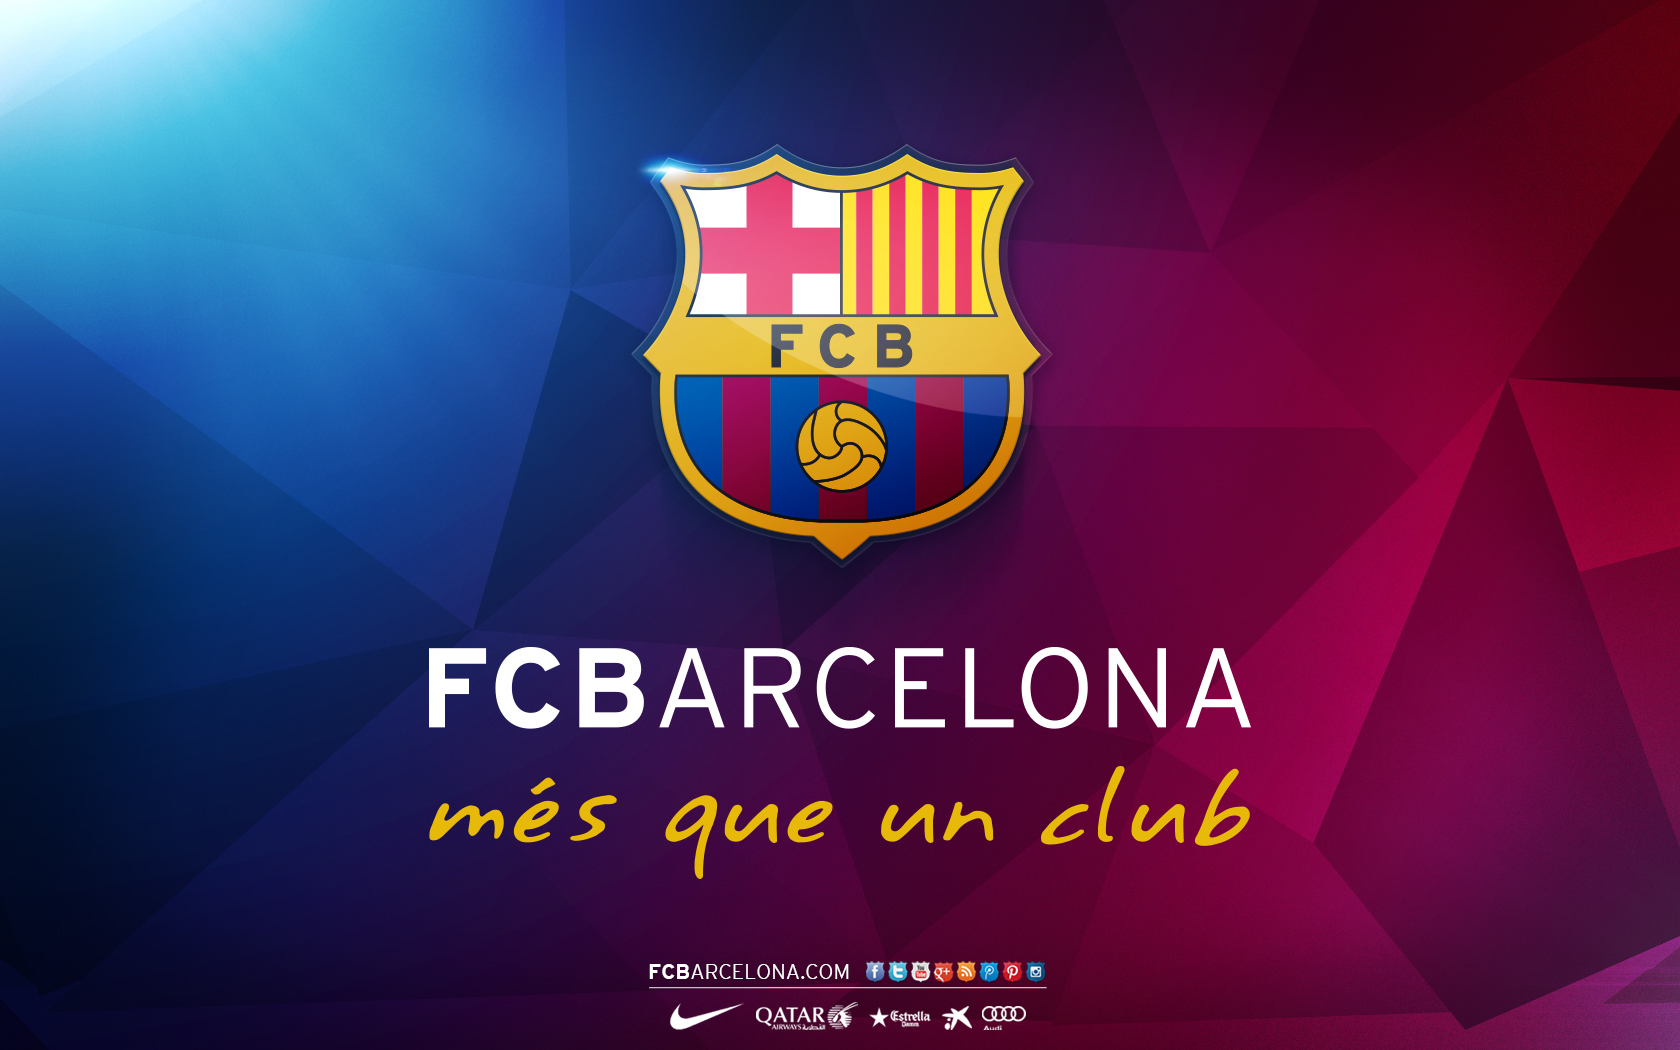 free download funmozar fc barcelona team wallpapers 1680x1050 for your desktop mobile tablet explore 77 fc barca wallpapers fc barca wallpaper fc barca wallpapers barca wallpaper fc barca wallpaper fc barca wallpapers